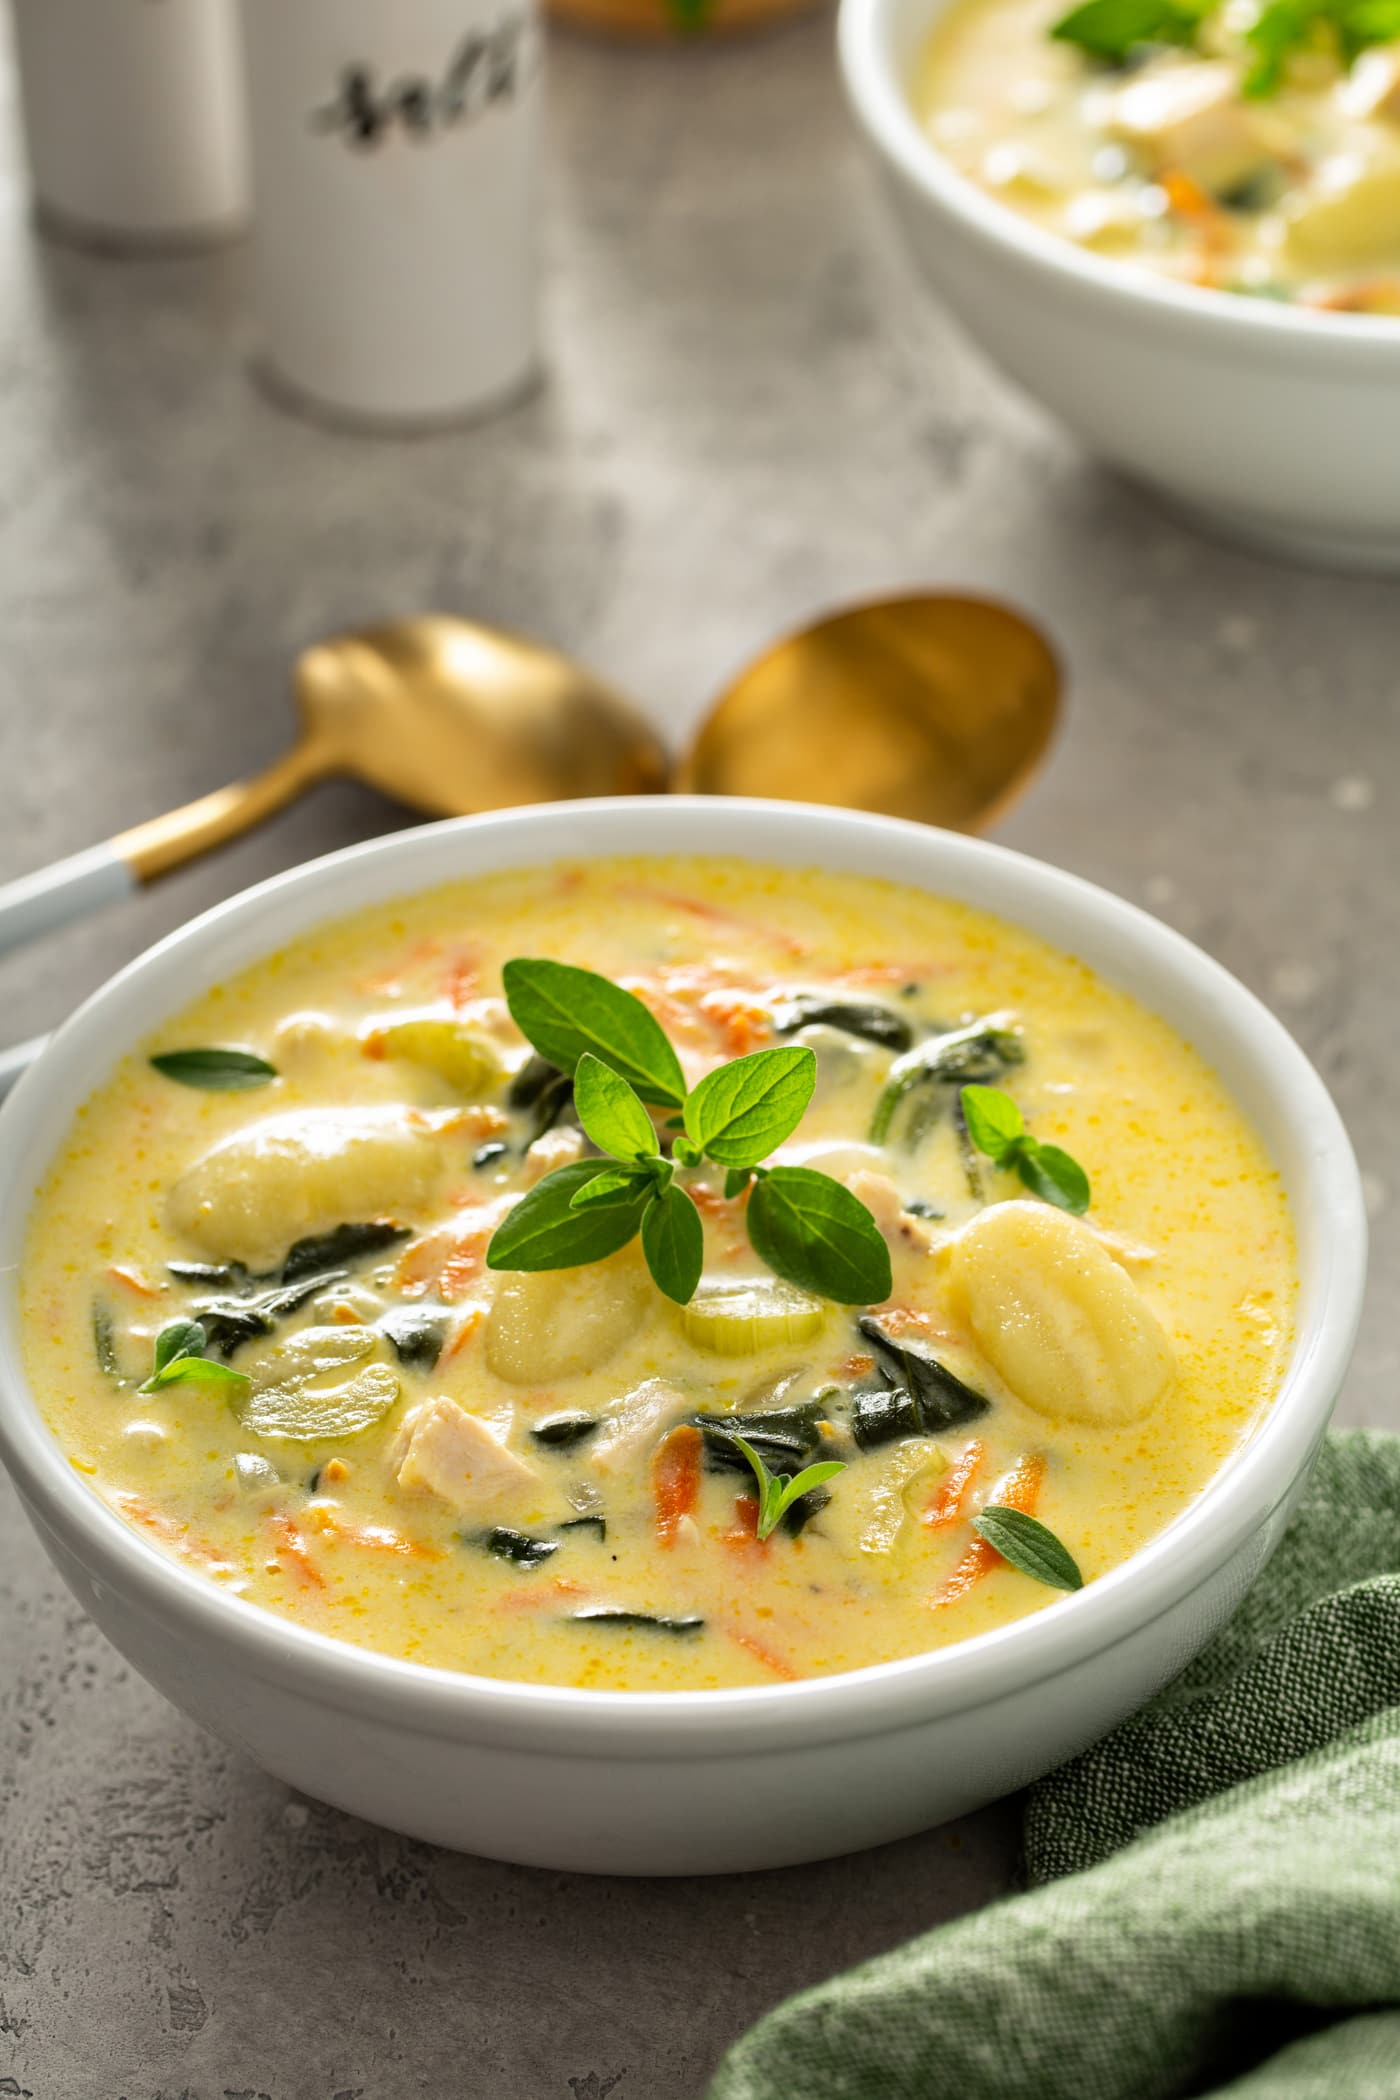 A bowl of copycat gnocchi soup. There are shredded carrots, gnocchi, celery, and chicken in a creamy soup. Two soup spoons are next to the bowl of soup and a sprig fresh herbs tops the soup.